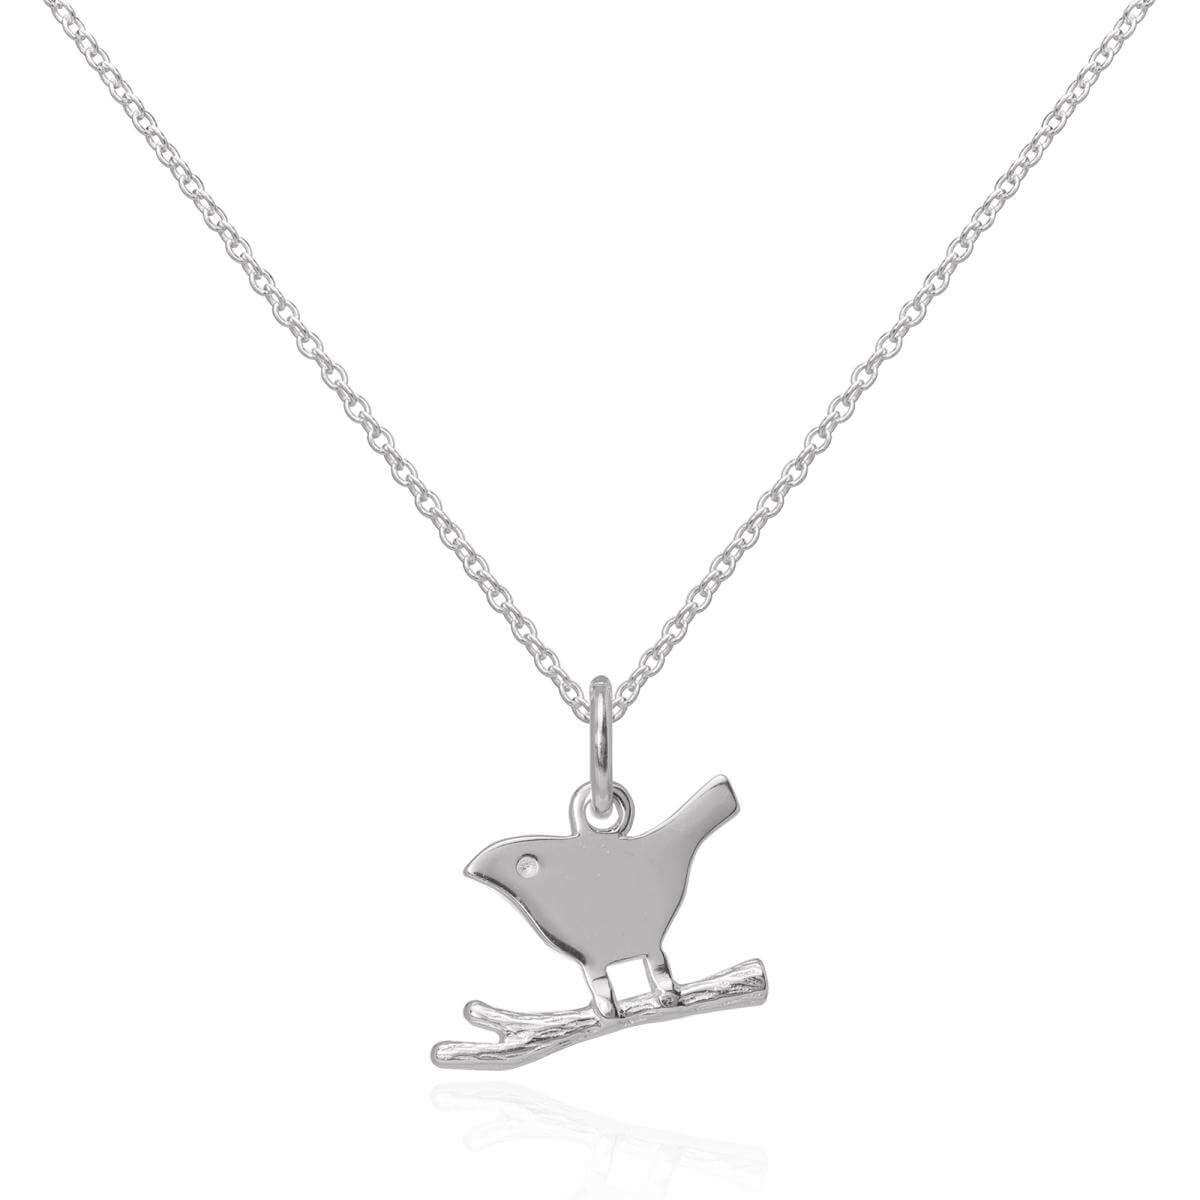 Sterling Silver Simple Bird on a Branch Pendant Necklace 16 - 22 Inches